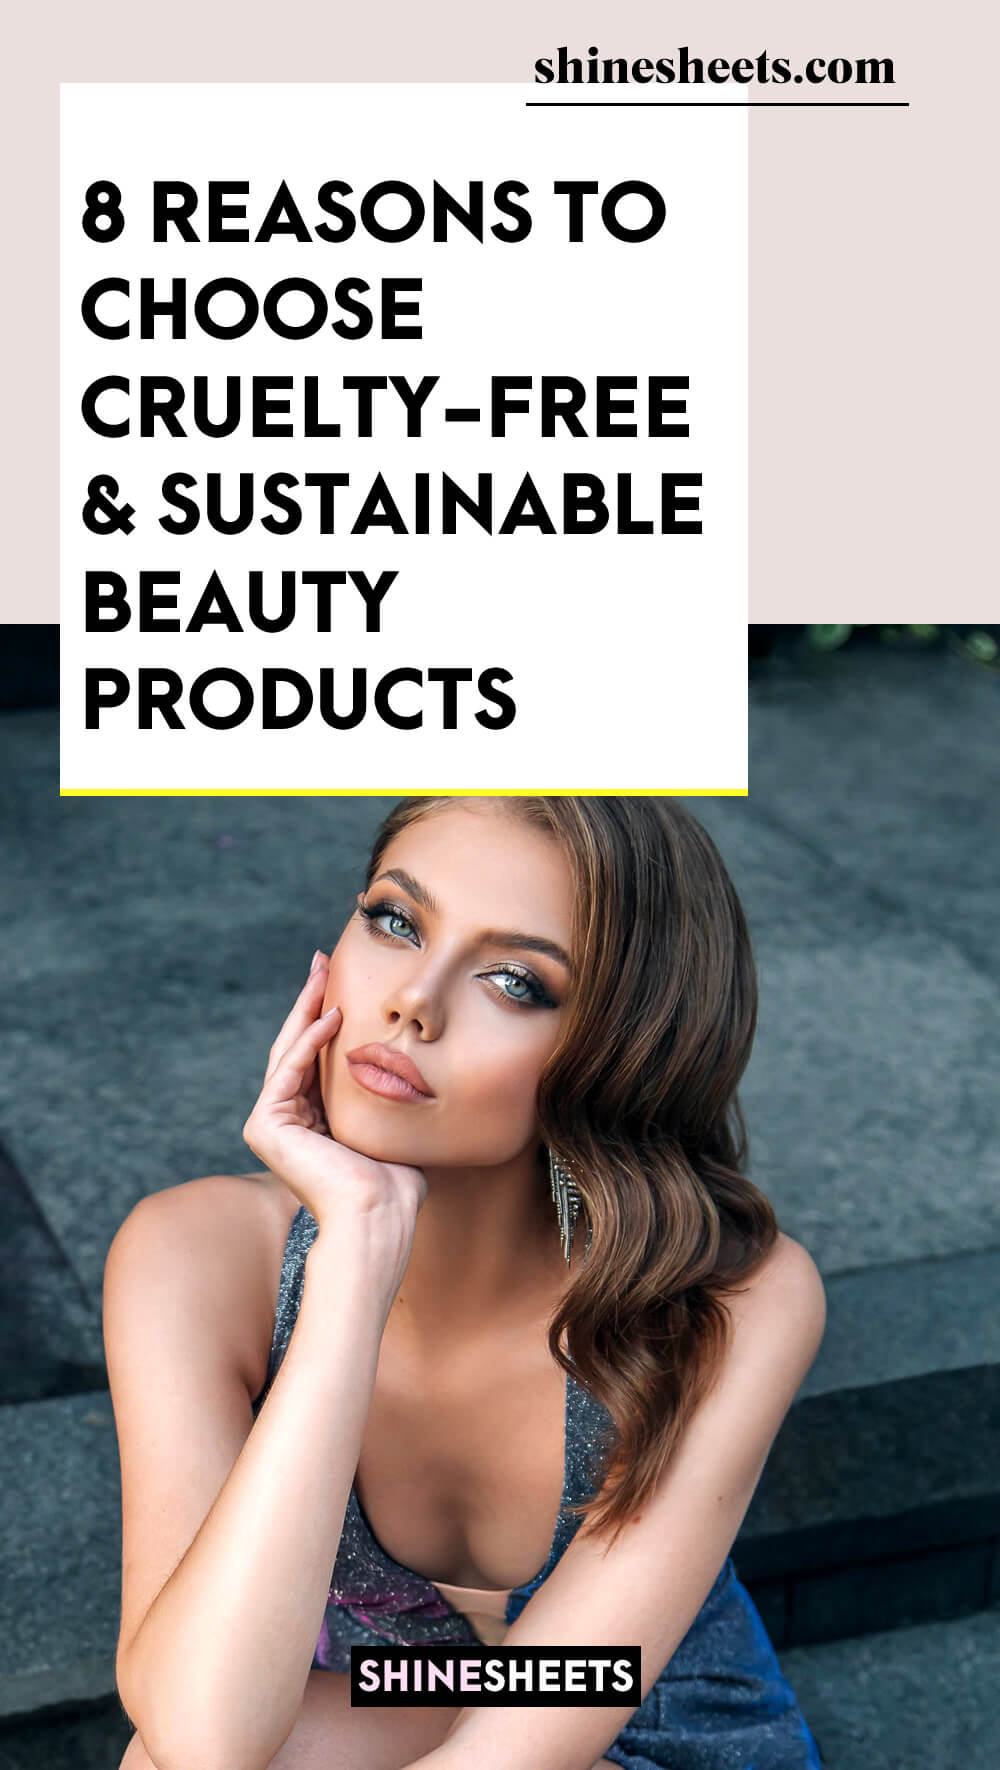 woman who uses cruelty free beauty products